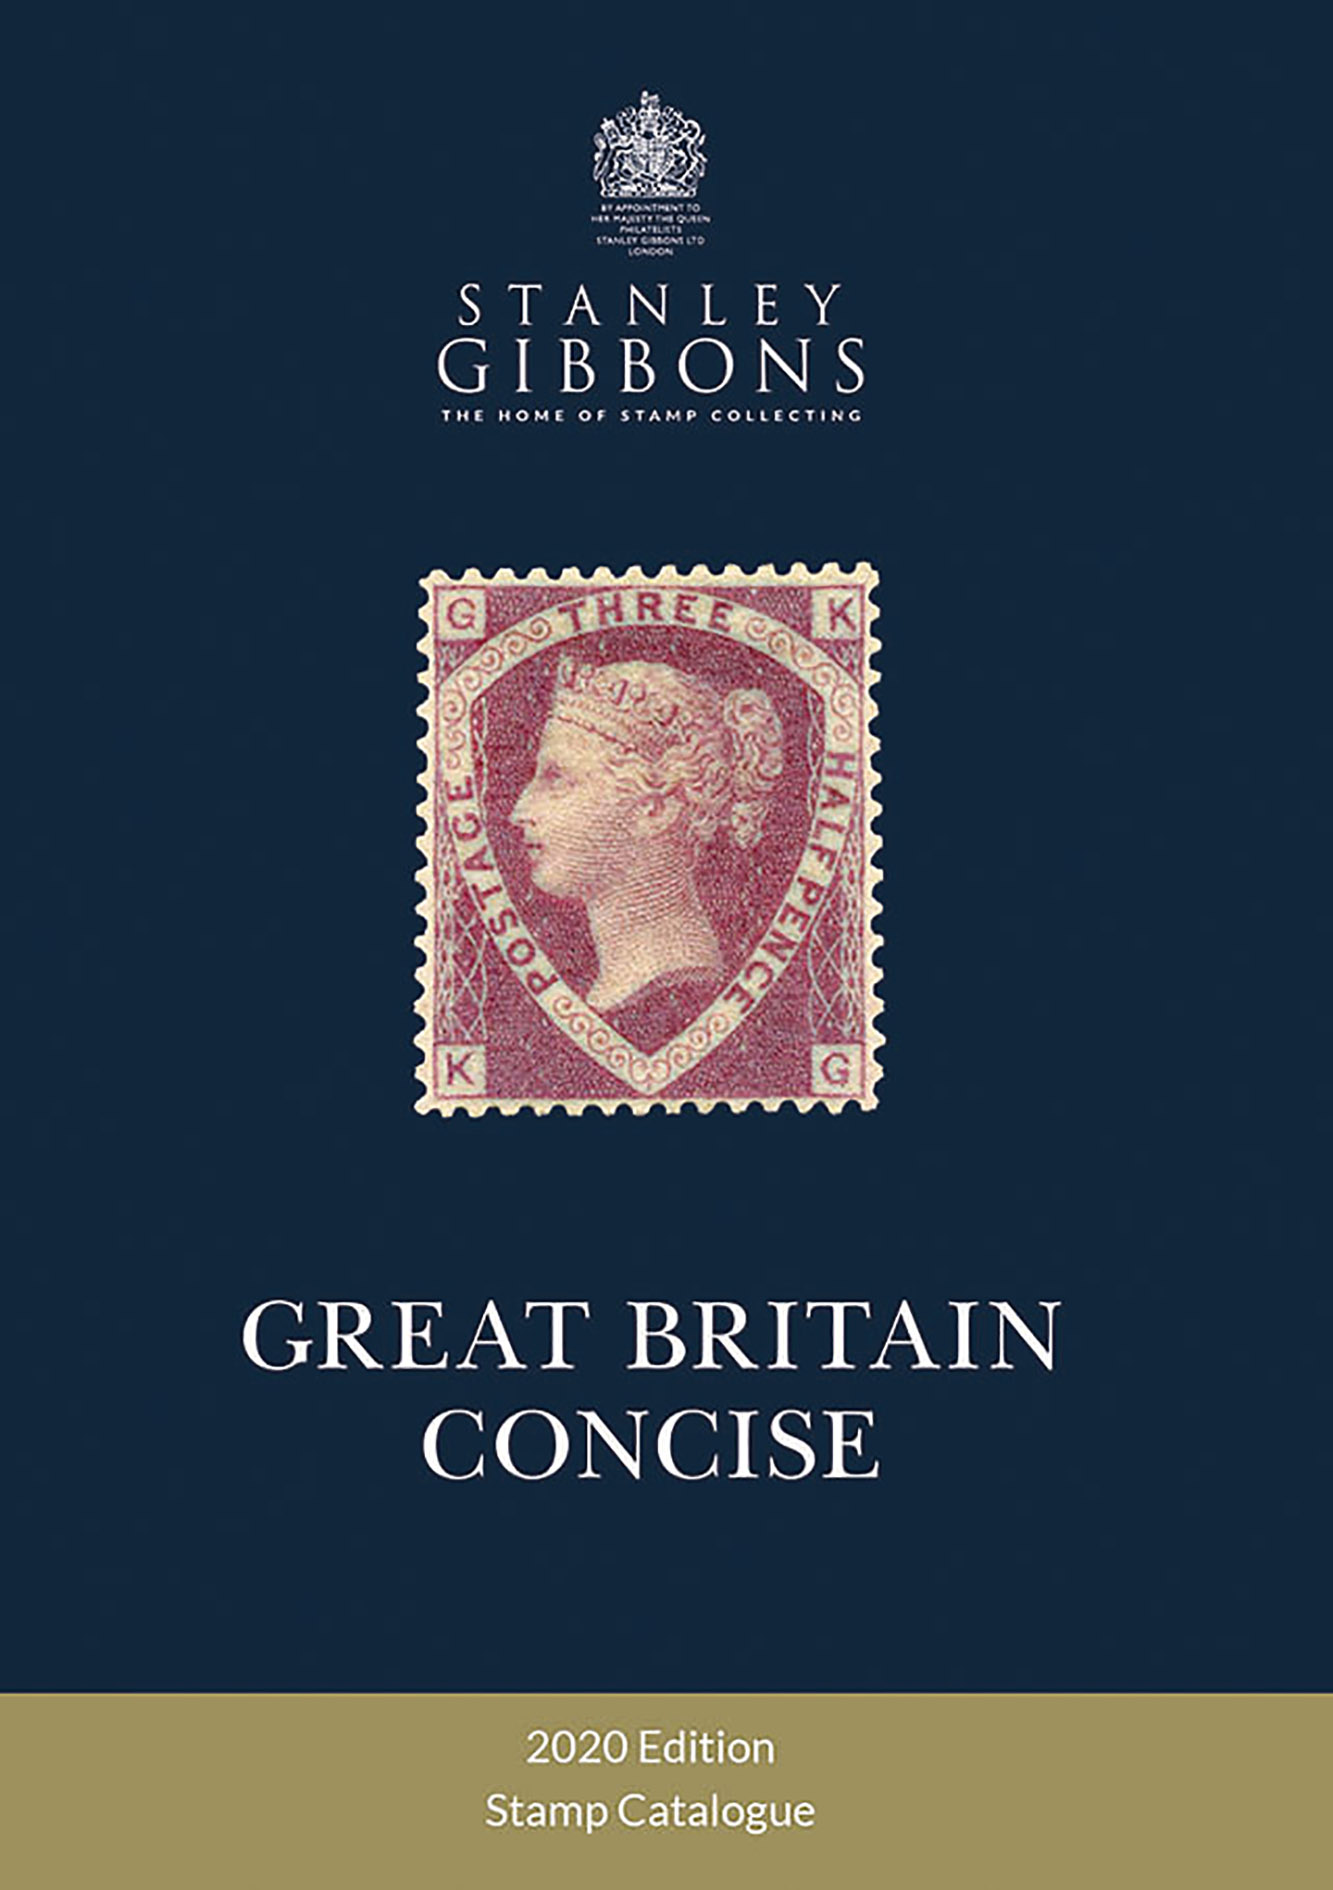 2020 Great Britain Concise Stamp Catalogue